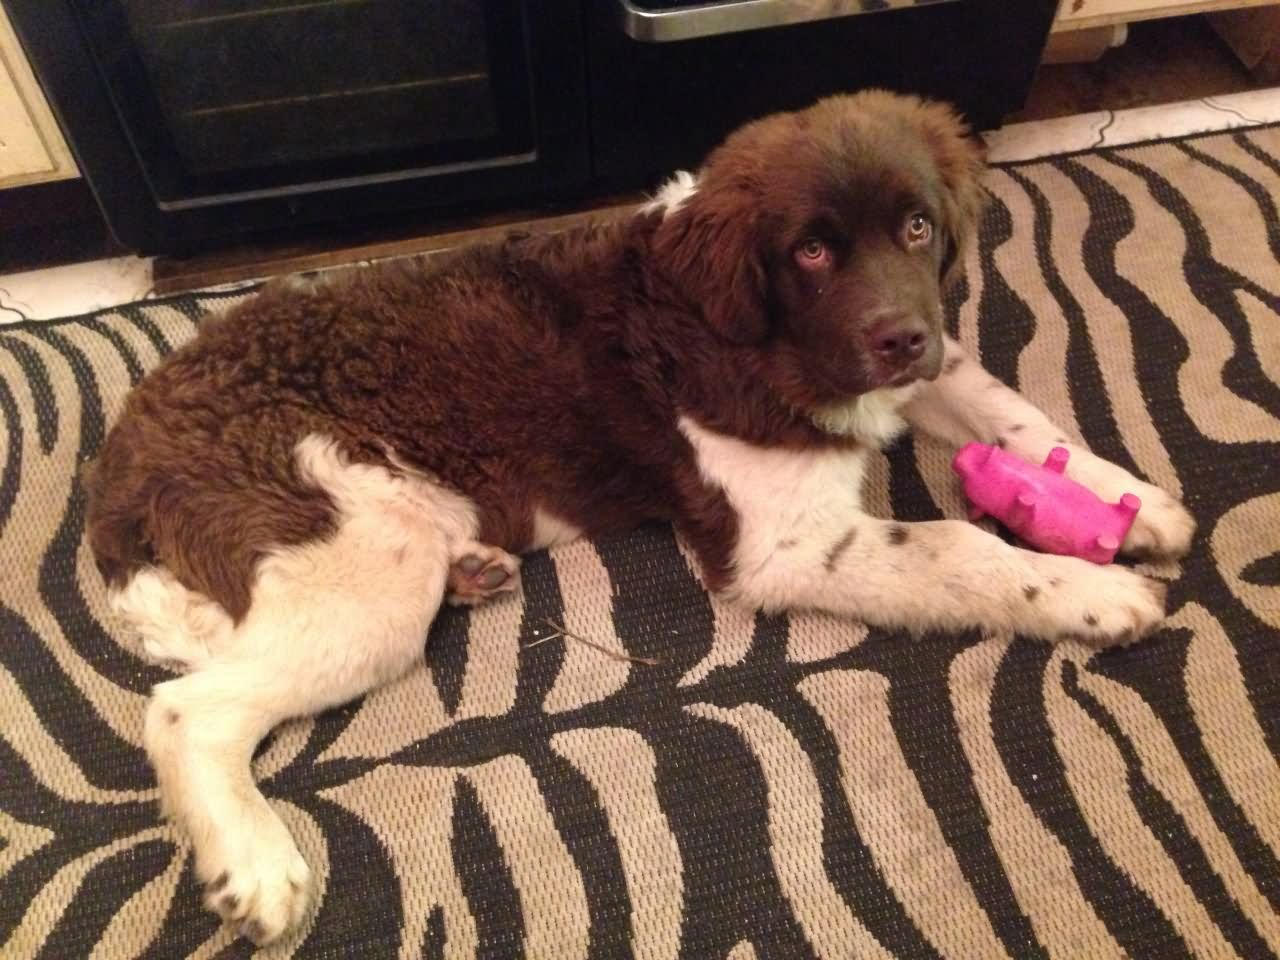 35 very beautiful newfoundland dog pictures - 6 Months Old Brown And White Newfoundland Puppy